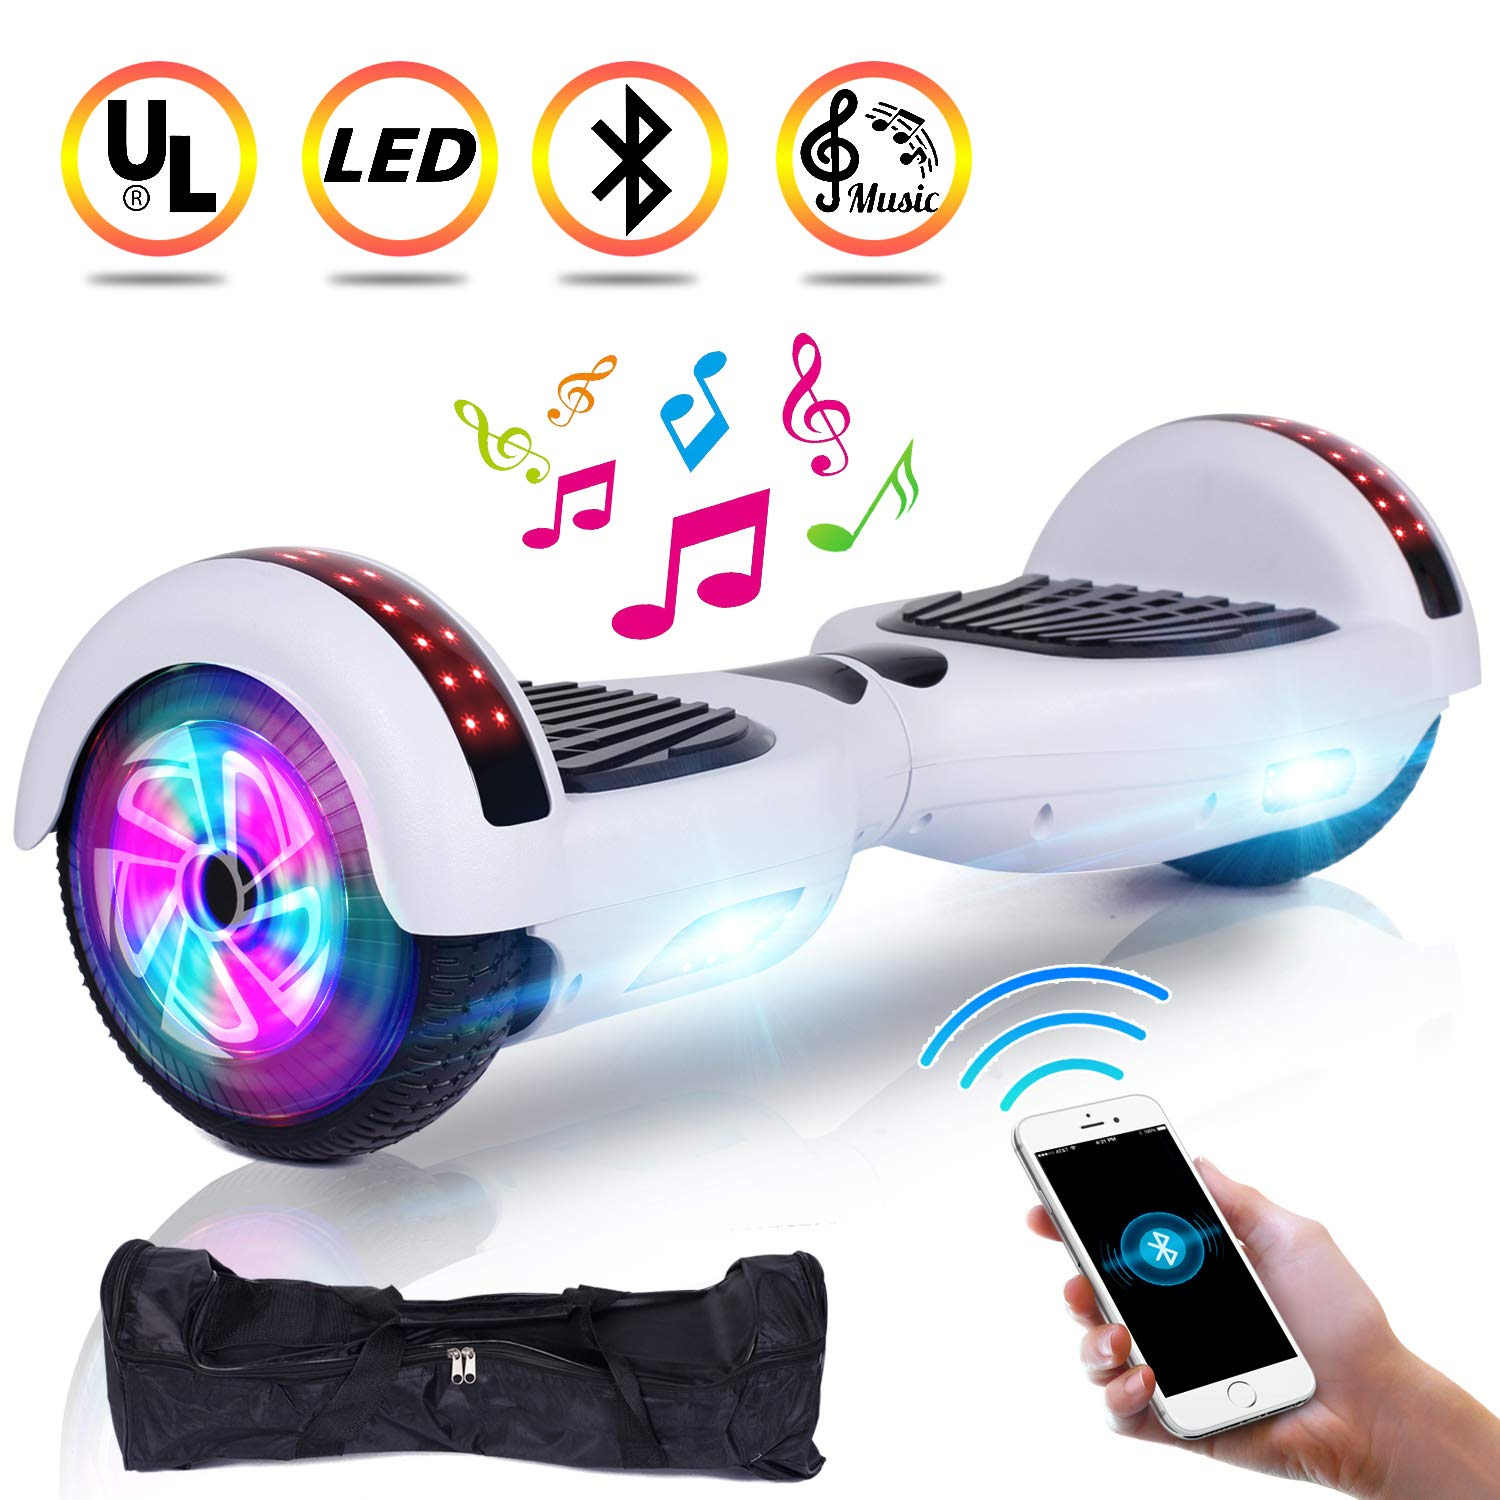 UNI-SUN 6.5'' Hoverboard for Kids, Two Wheel Electric Scooter, Self Balancing Hoverboard with Bluetooth and LED Lights for Adults, UL 2272 Certified Hover Board(Ultimate White)